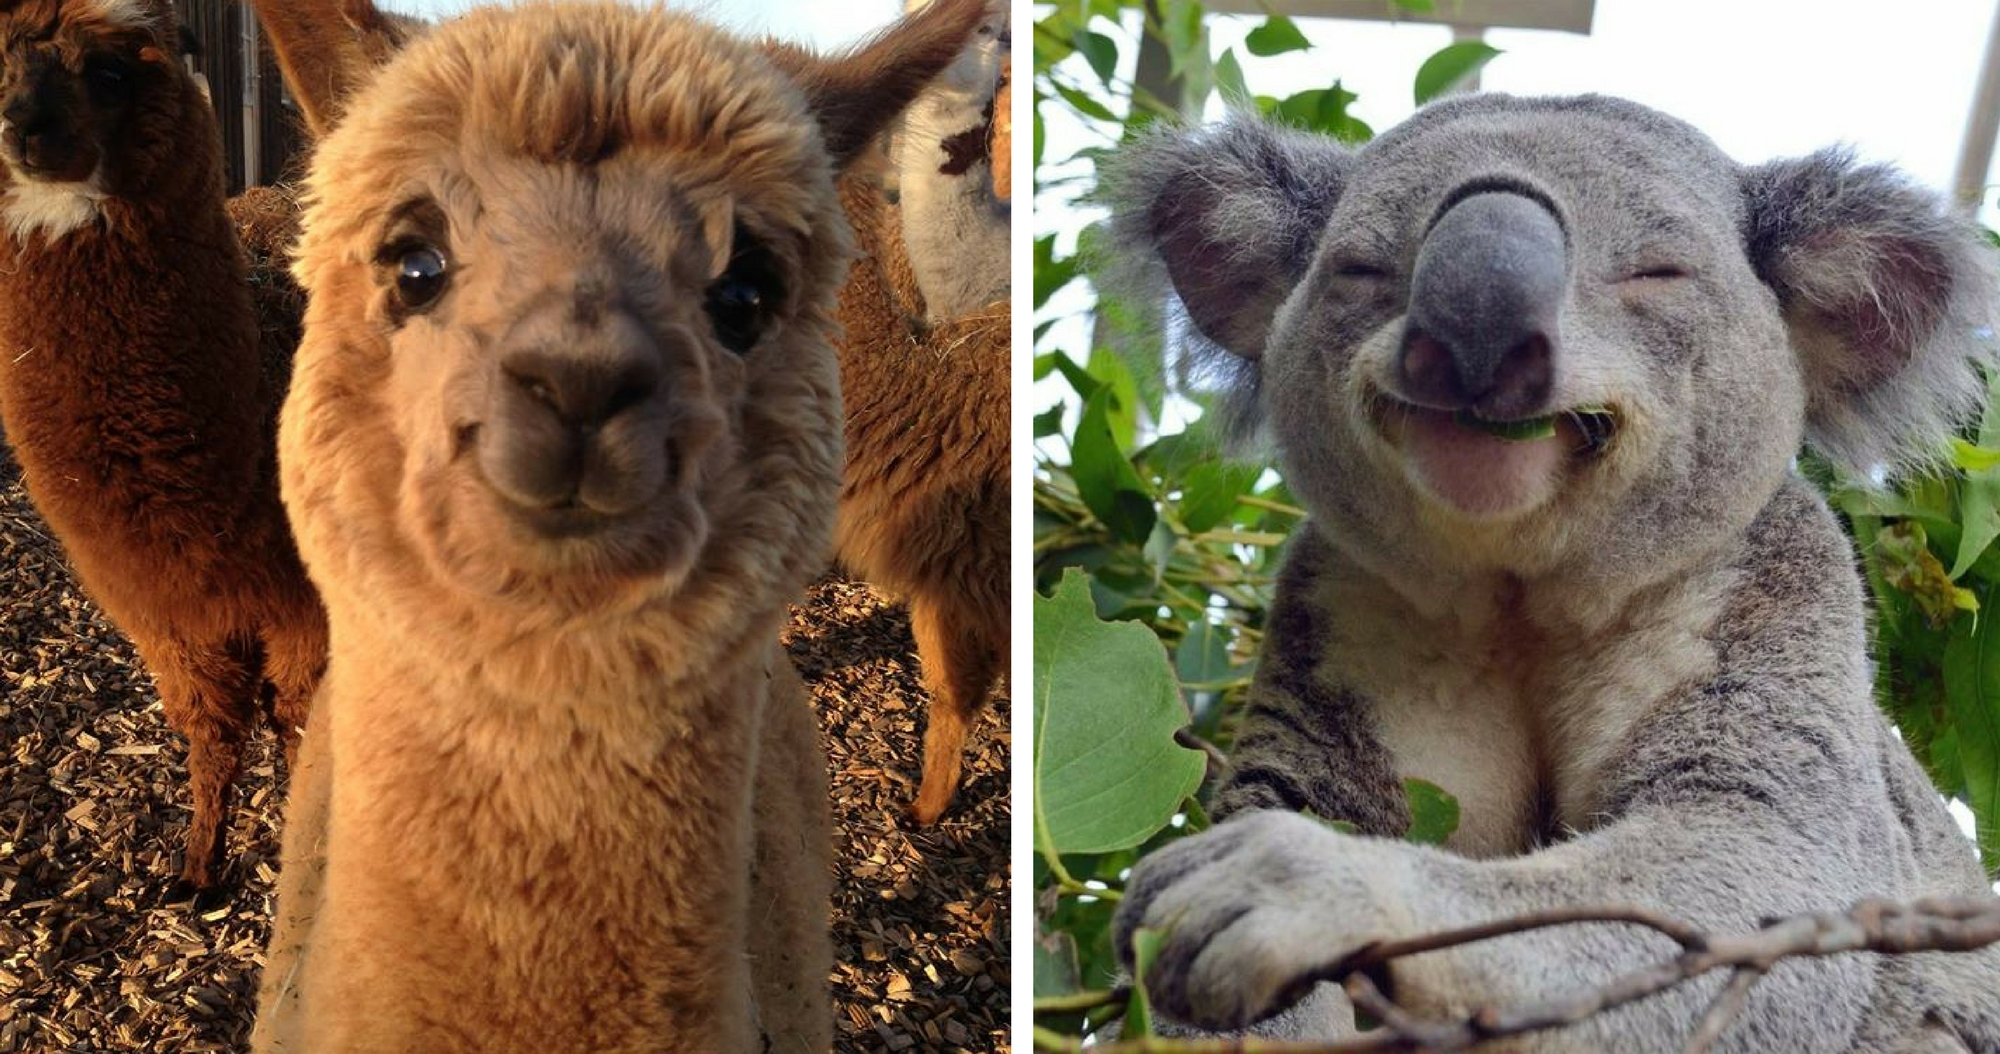 20 Smiling Animals That Will Make You Forget All Your Worries